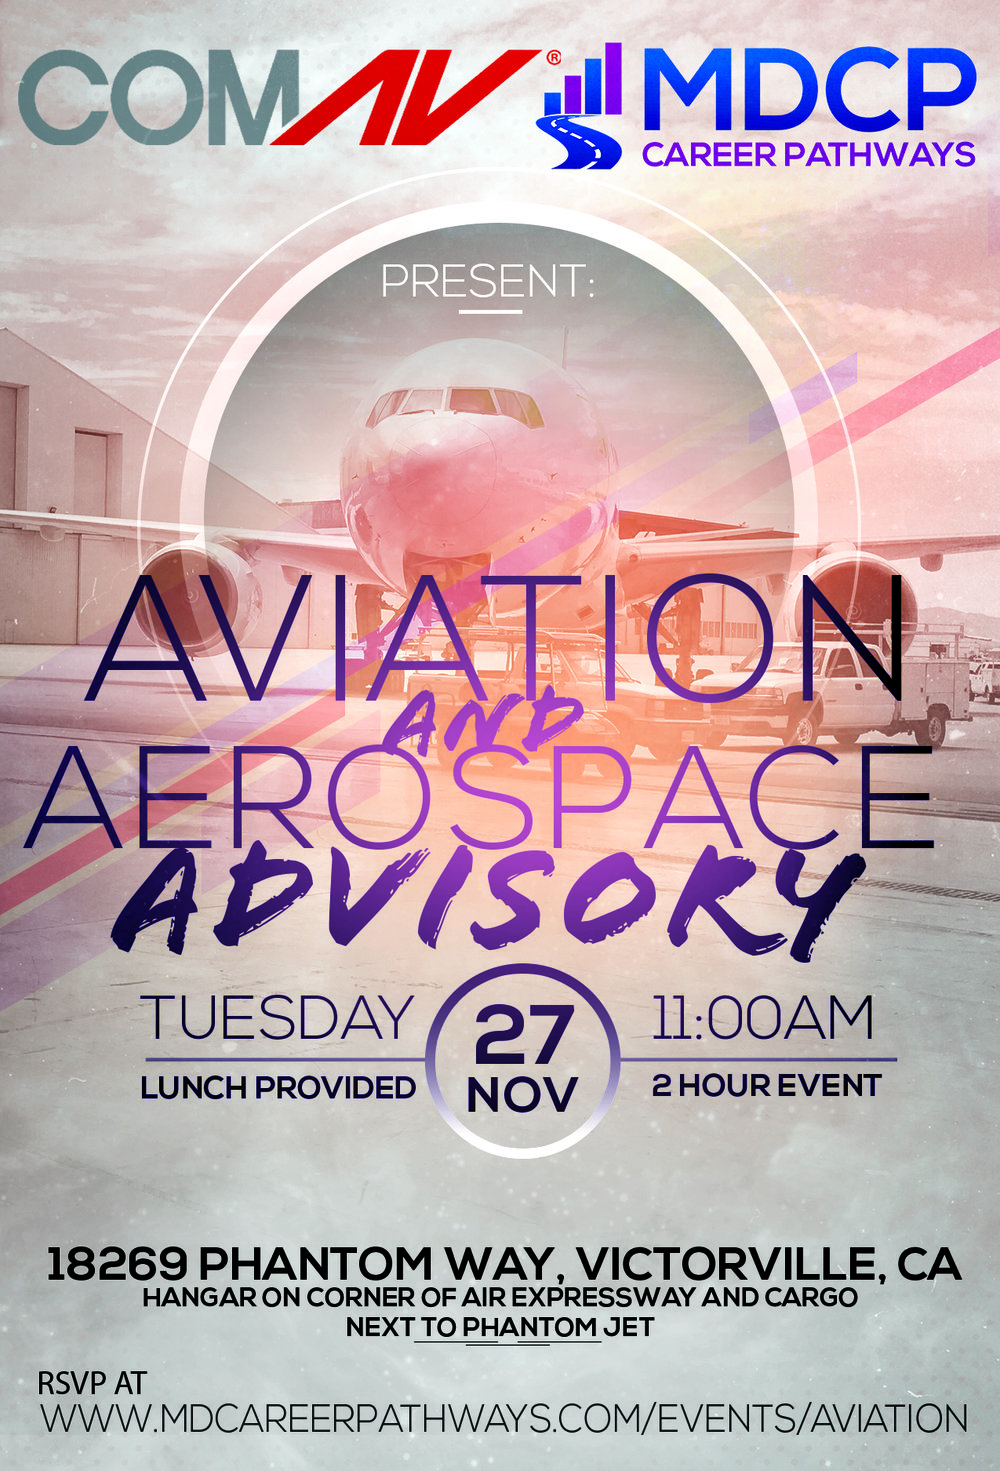 Aviation Aerospace Advisory flyer